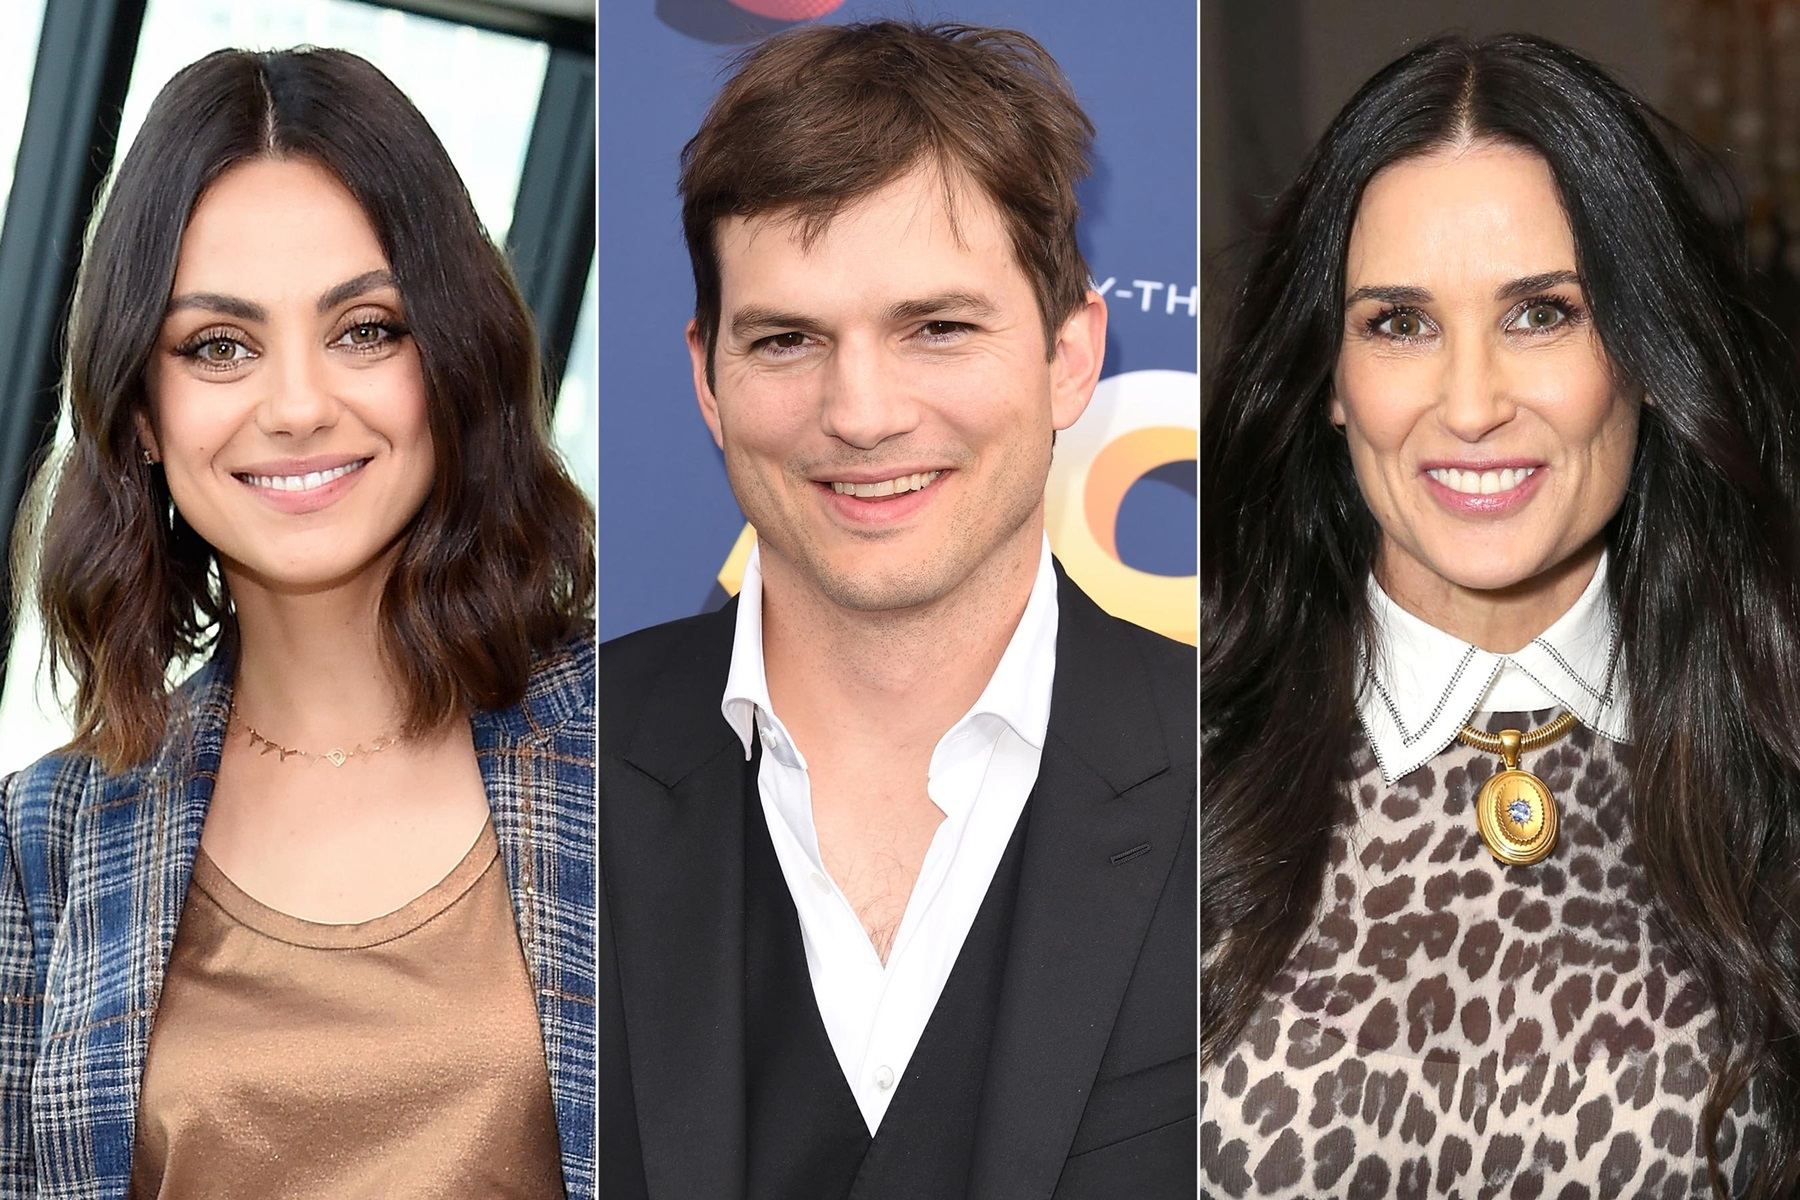 mila-kunis-disapproves-of-demi-moores-recent-public-statements-about-her-husband-ashton-kutcher-is-this-just-about-selling-books